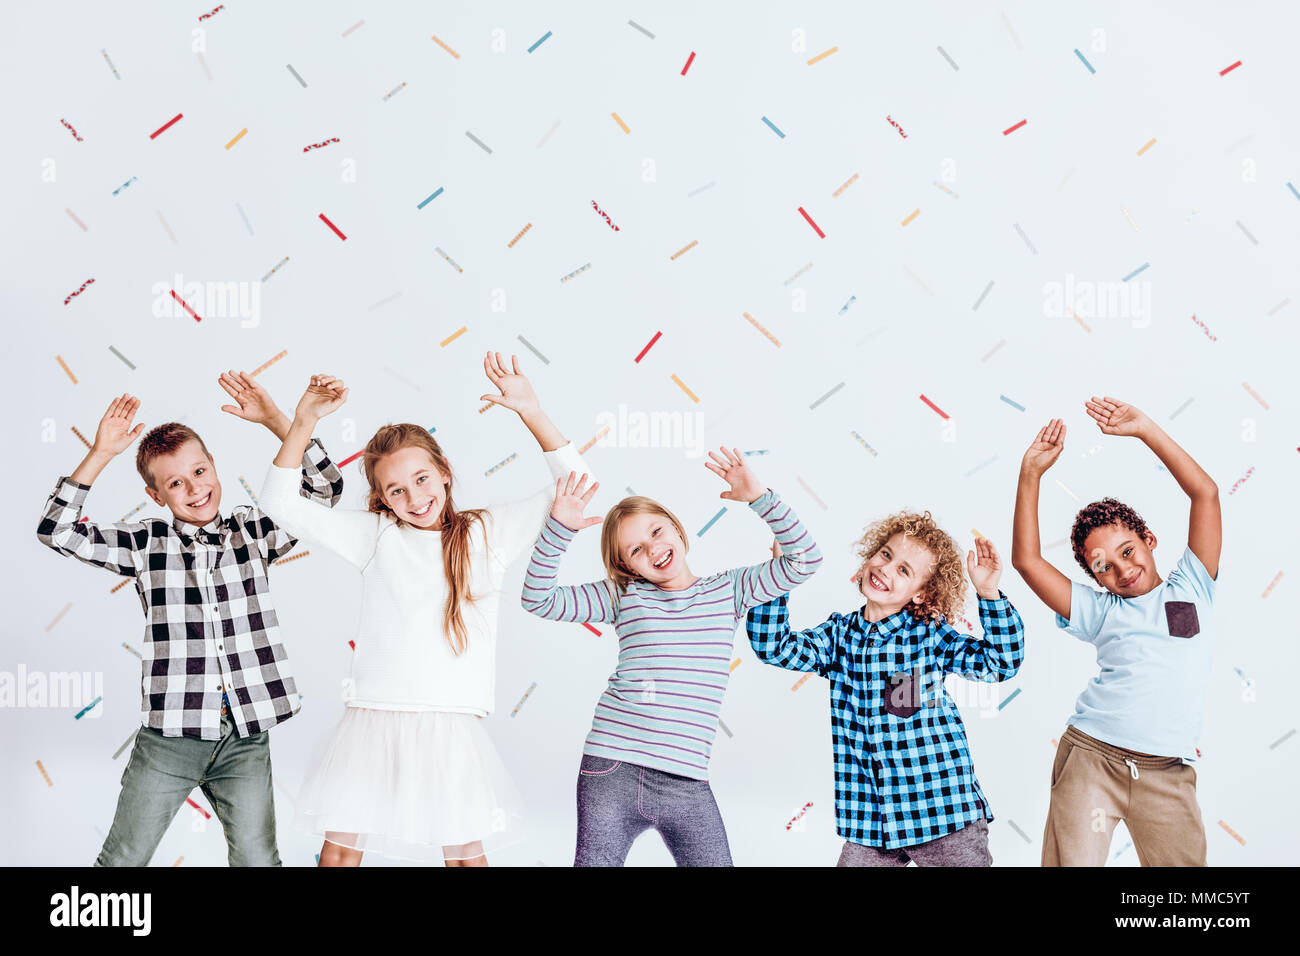 Group of kids standing with their hands up and having fun - Stock Image